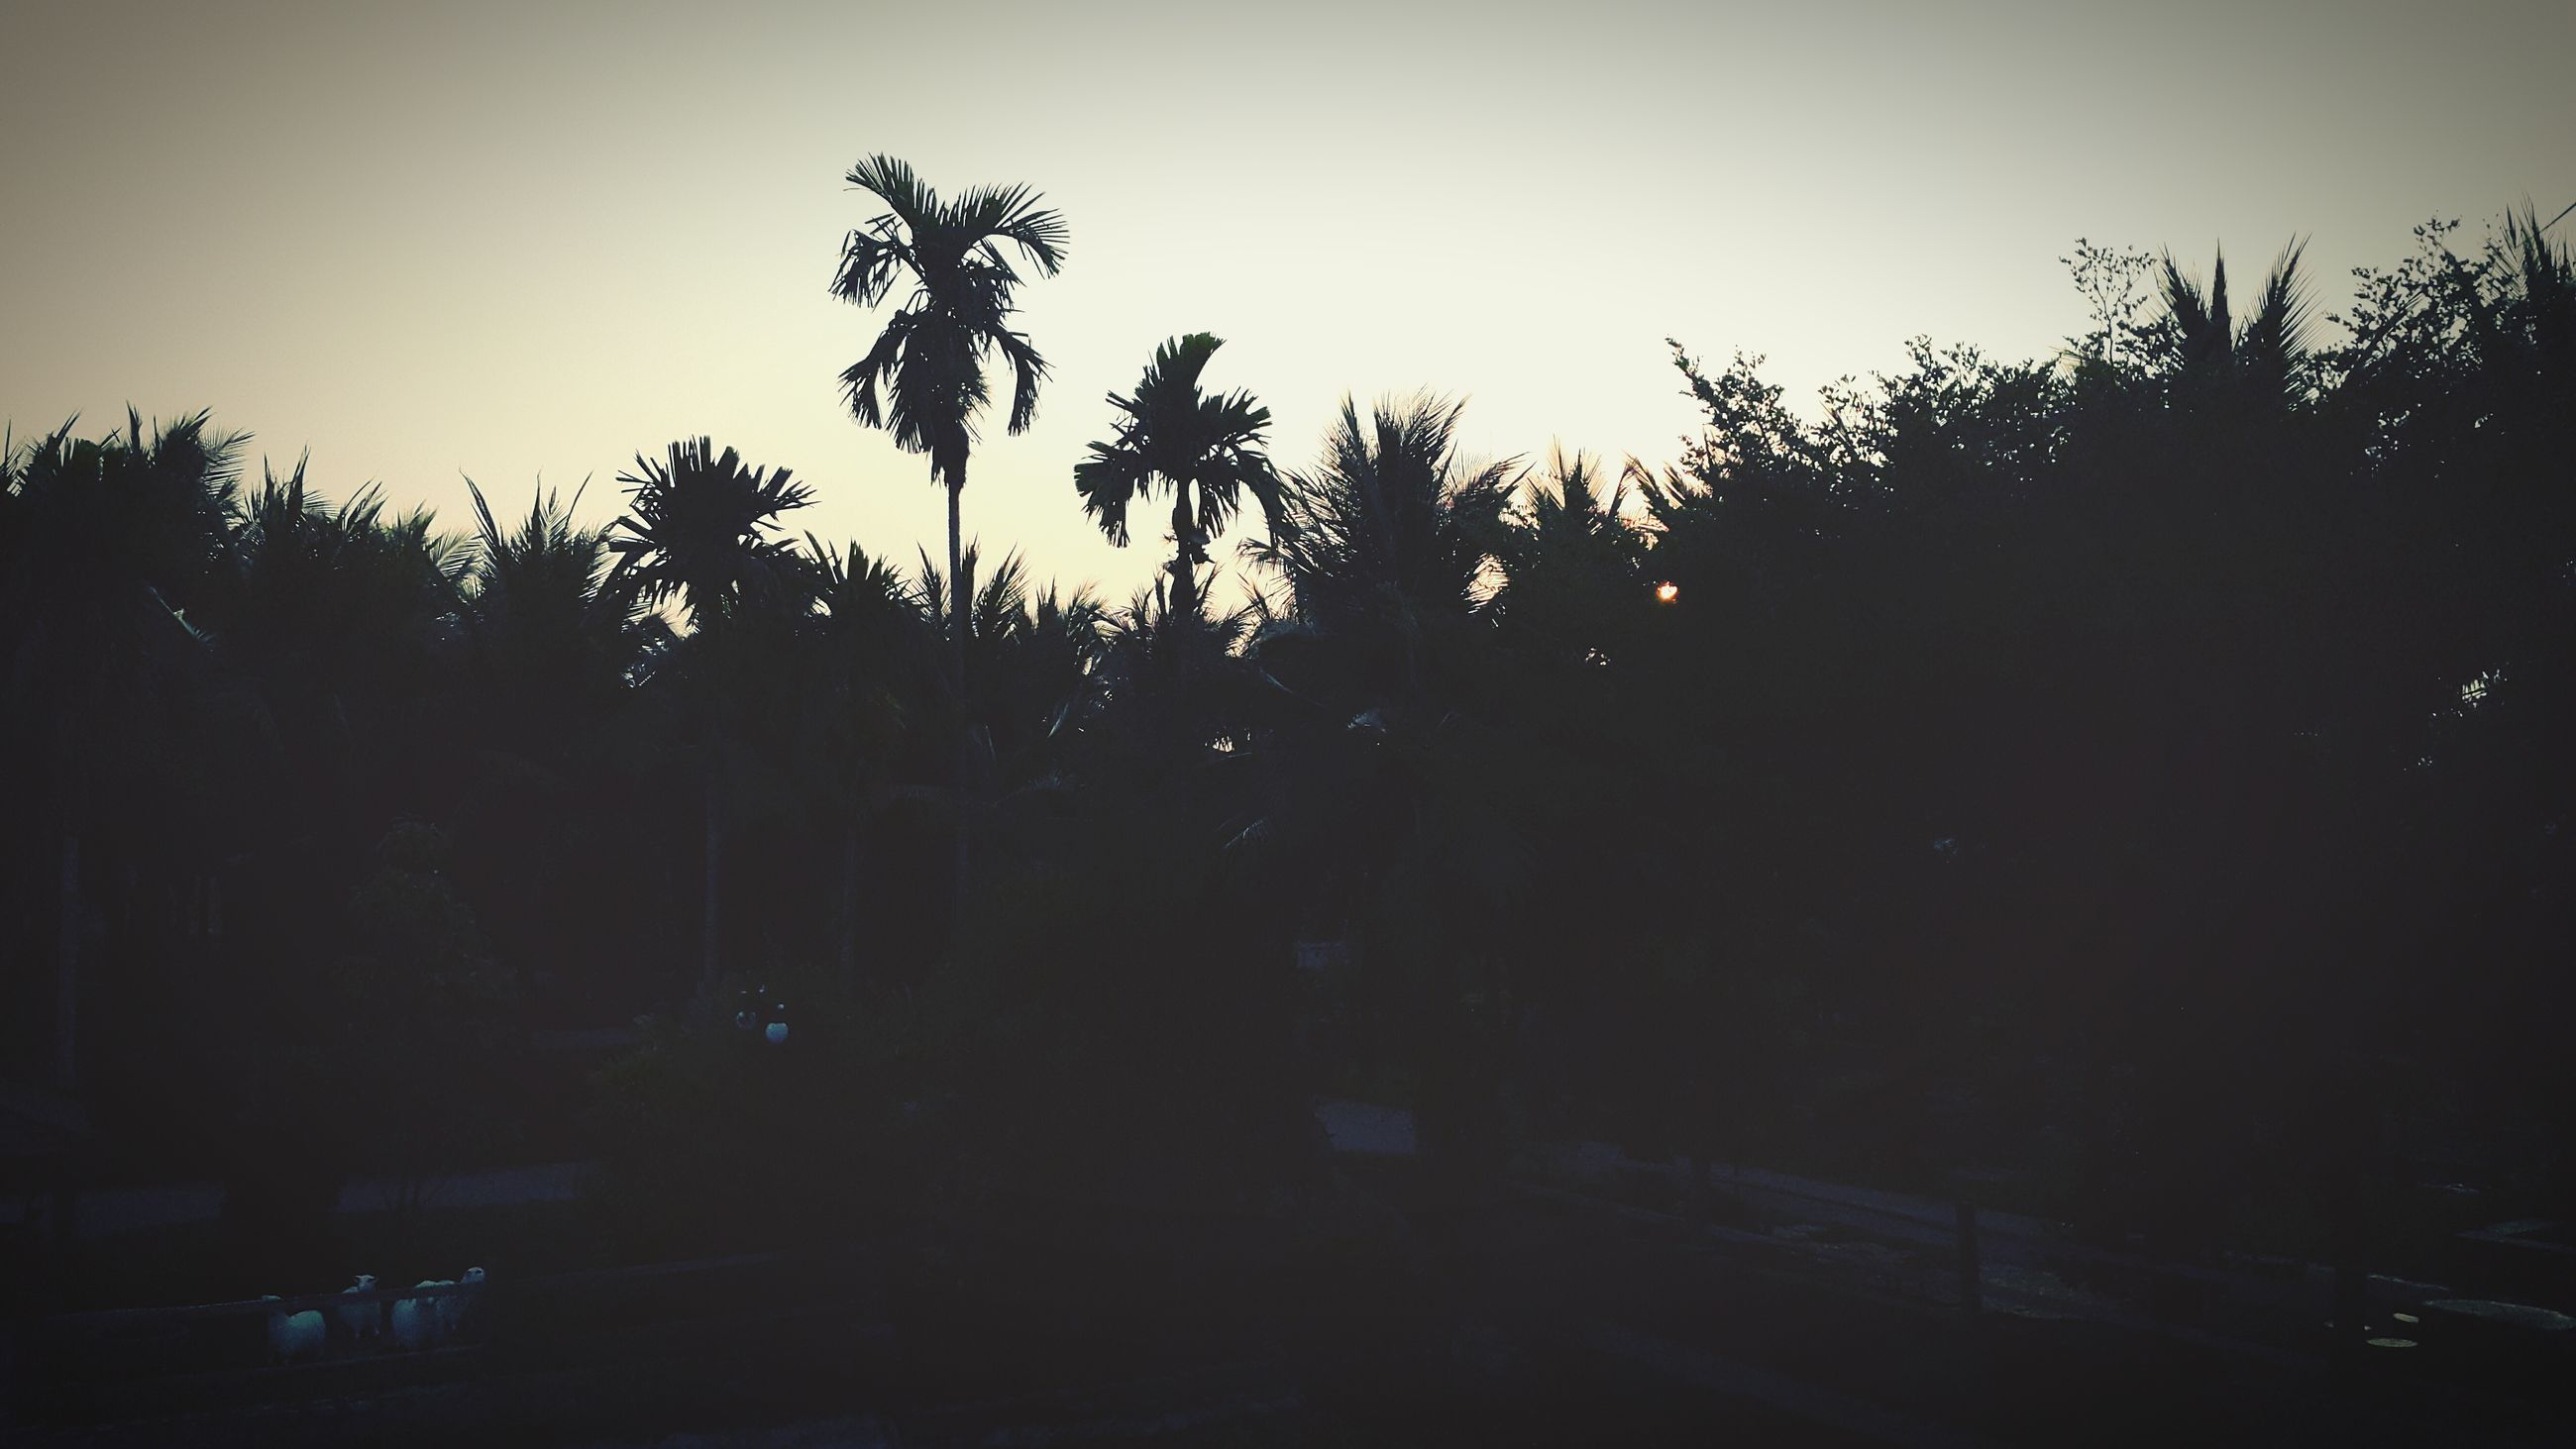 silhouette, tree, clear sky, growth, sky, copy space, nature, dark, dusk, sunset, tranquility, night, beauty in nature, tranquil scene, outdoors, palm tree, no people, scenics, outline, transportation